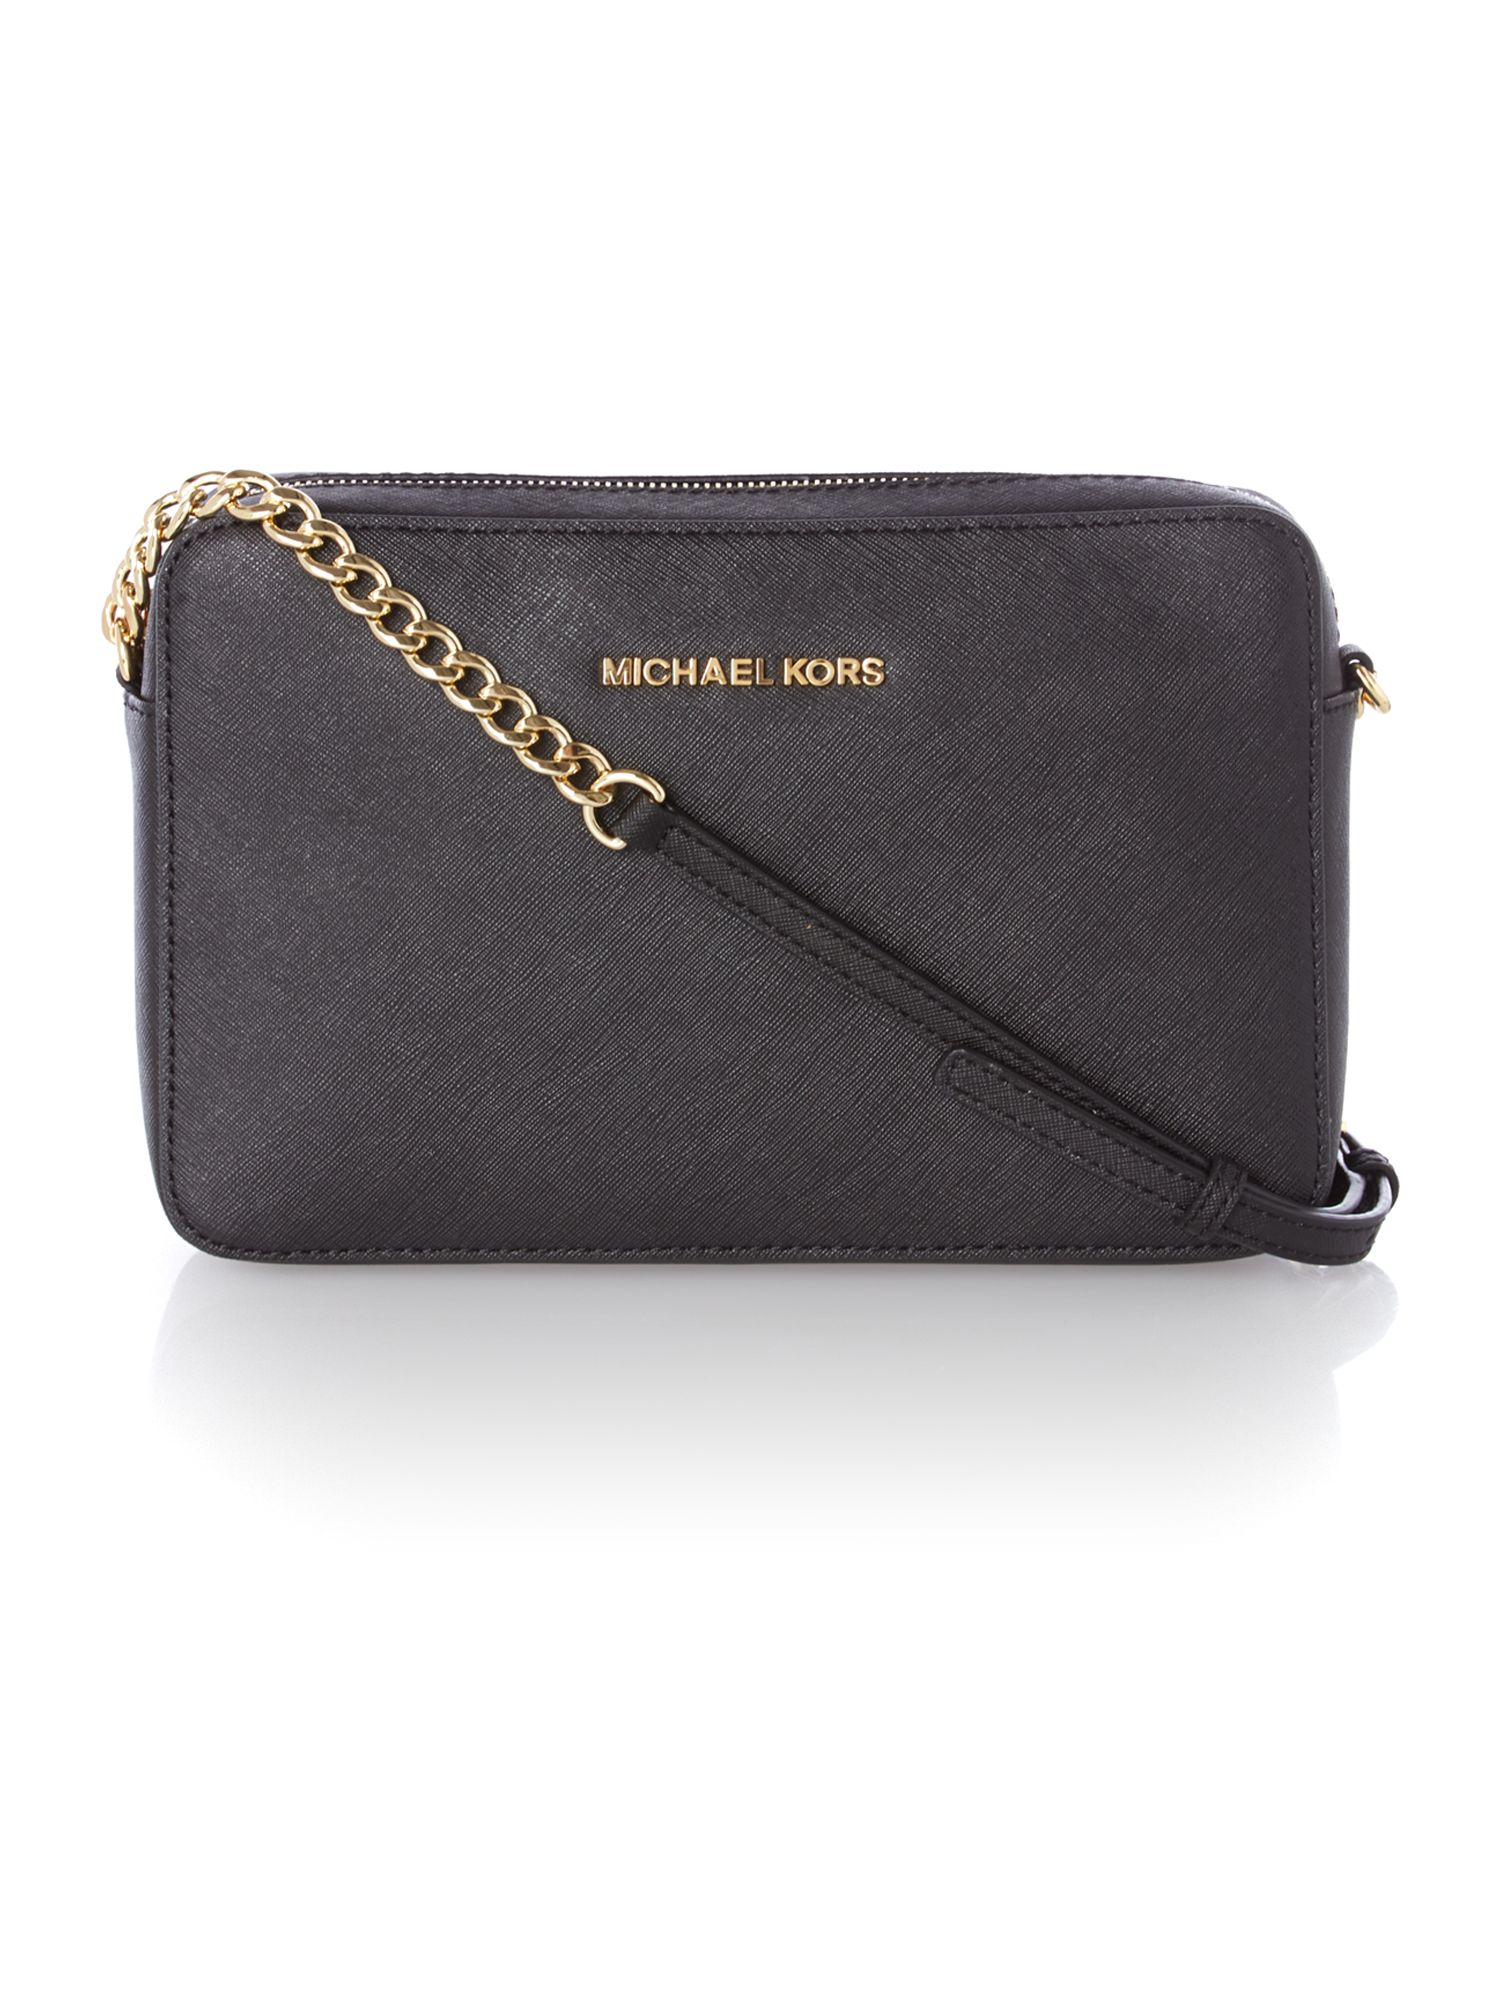 Jet set travel small black cross body bag